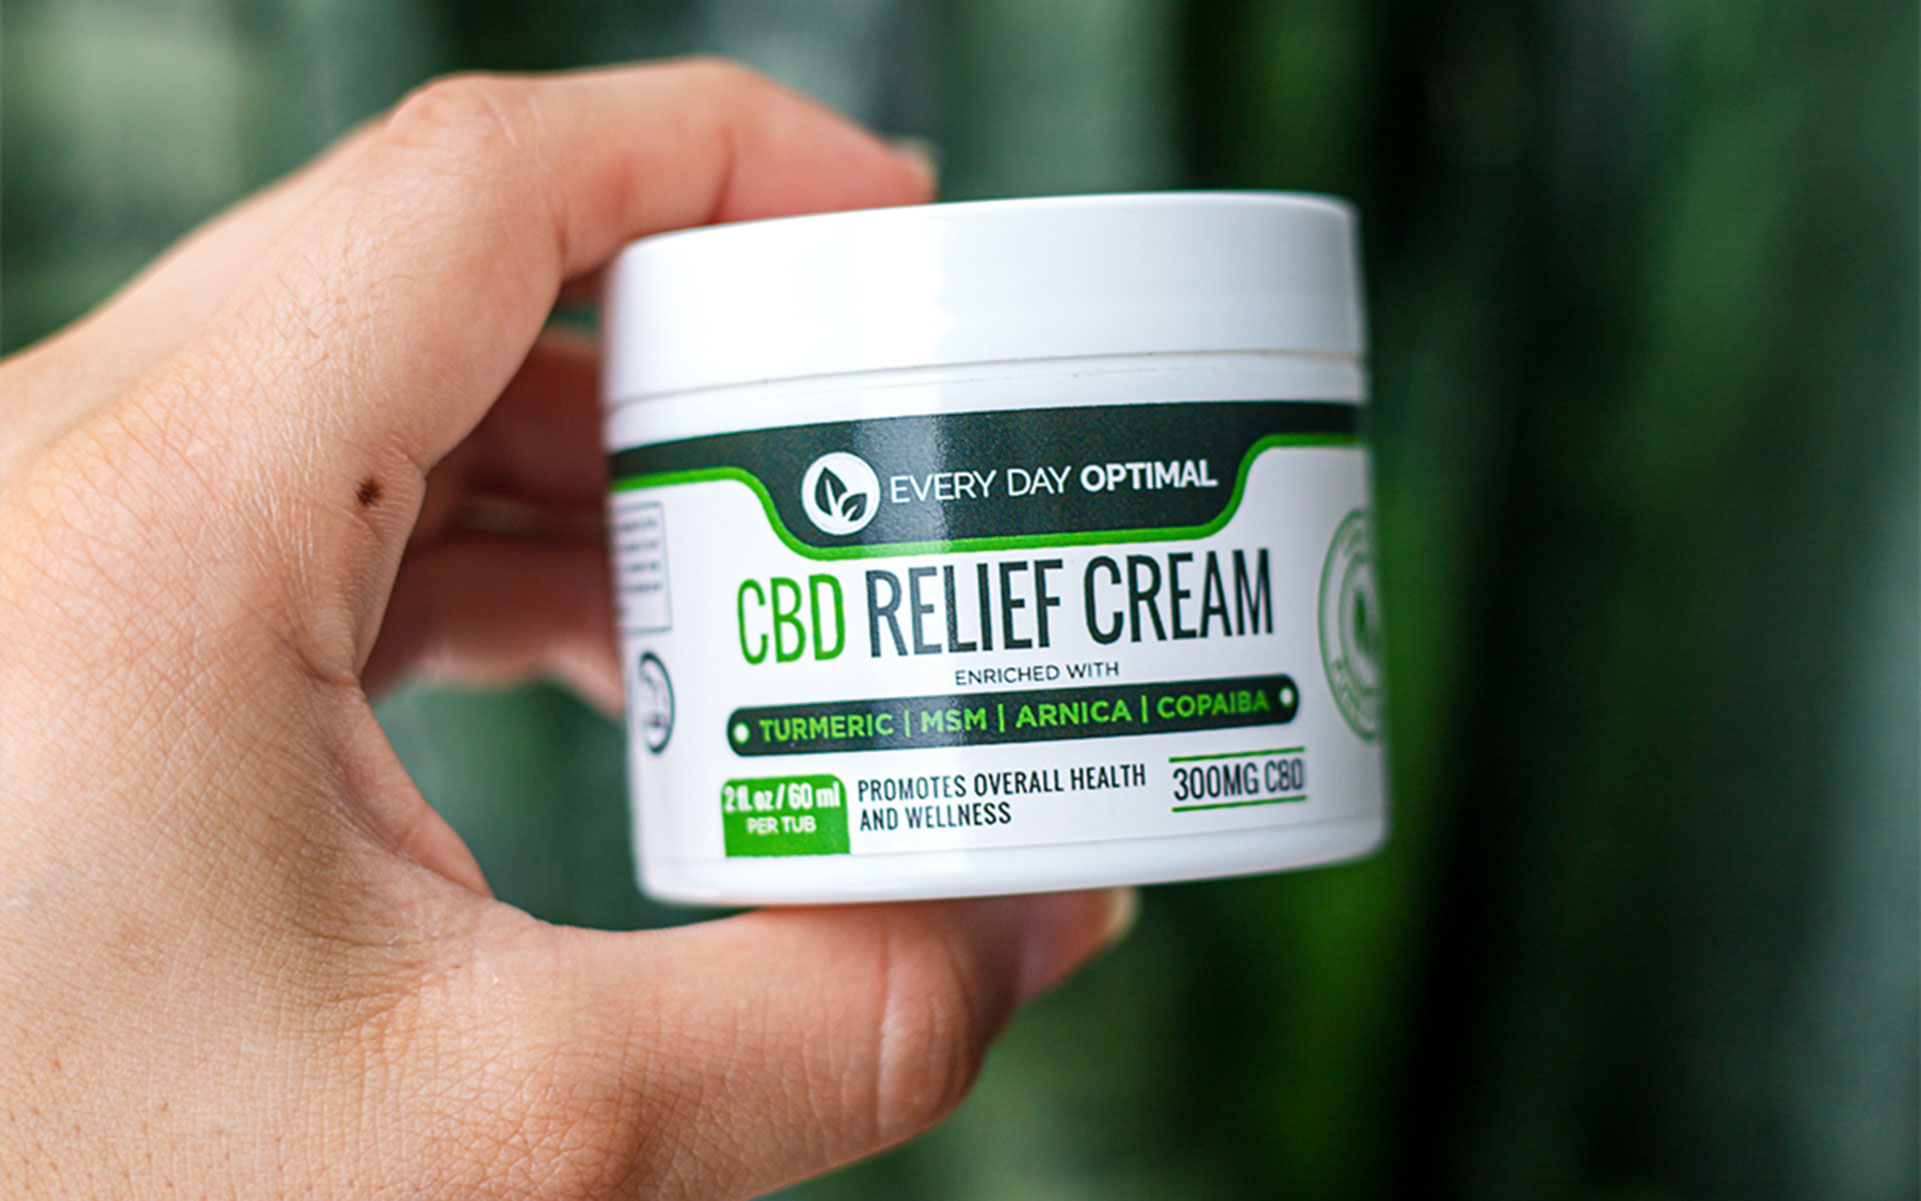 The CBD pain cream made with superfood ingredients by Every Day Optimal